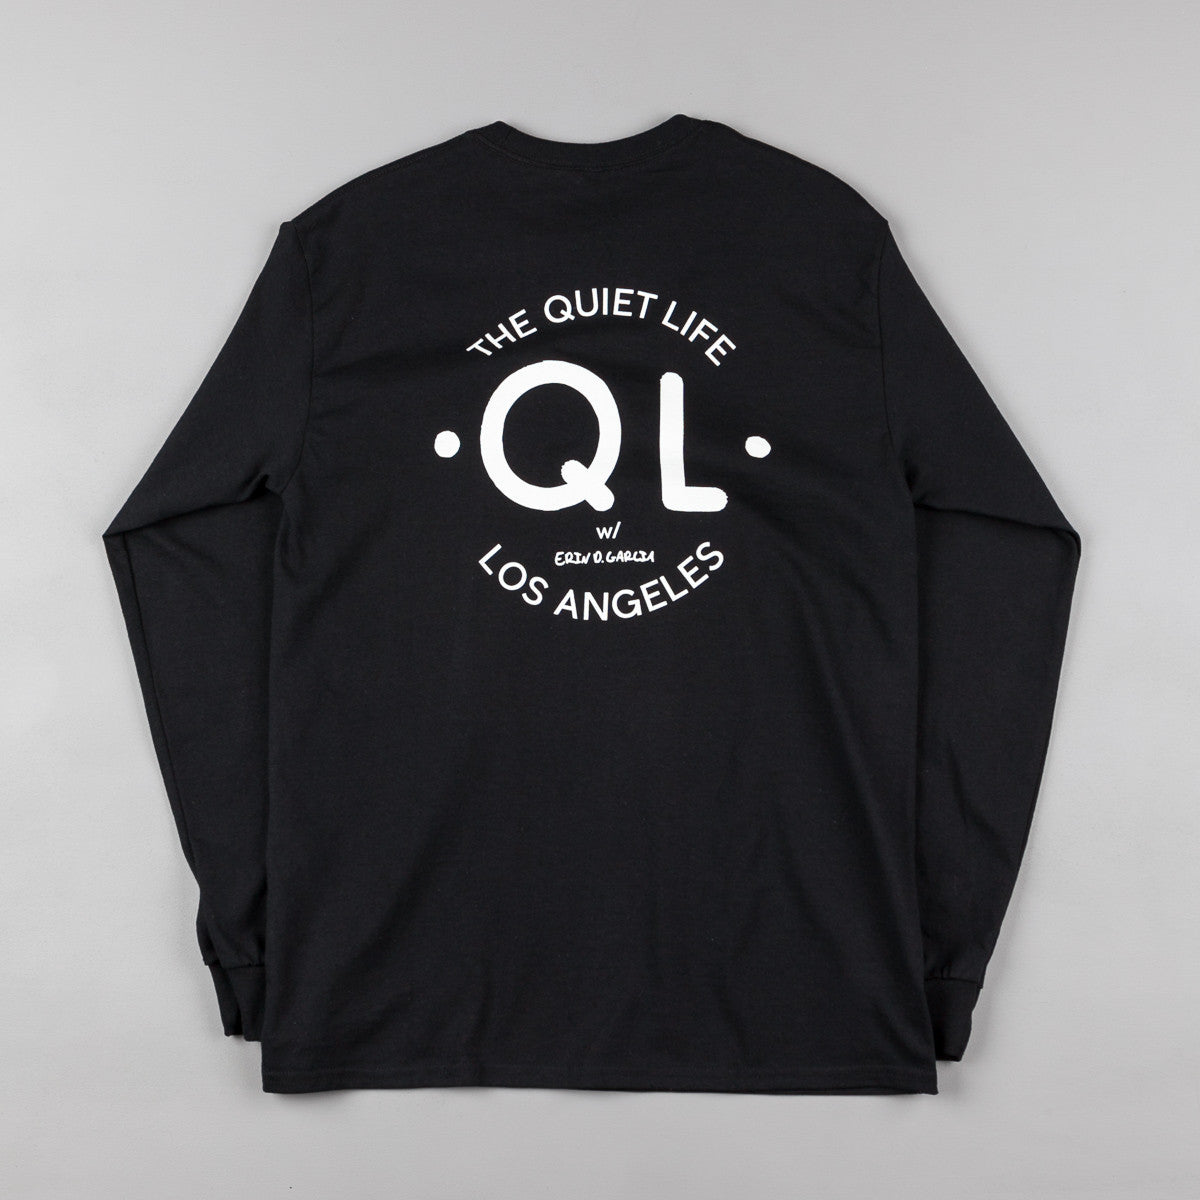 The Quiet Life Garcia Logo Long Sleeve T-Shirt - Black